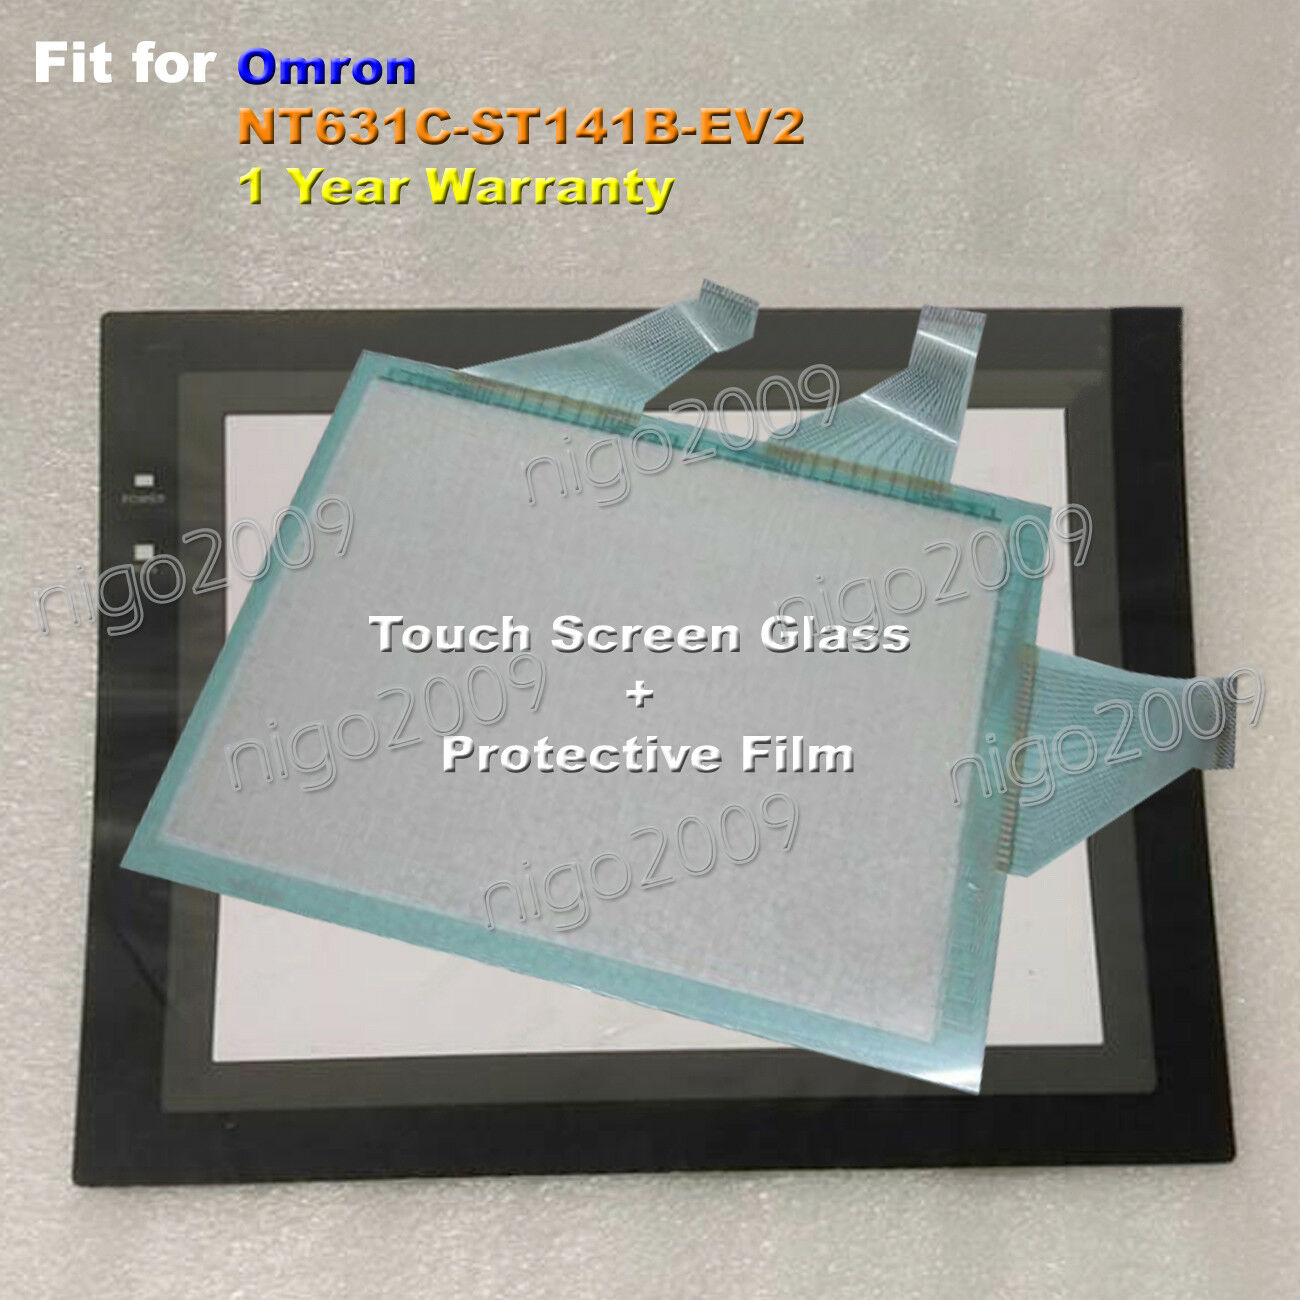 Fit For Omron NT631C-ST141B-EV2 Touch Screen Glass + Screen Predective Film